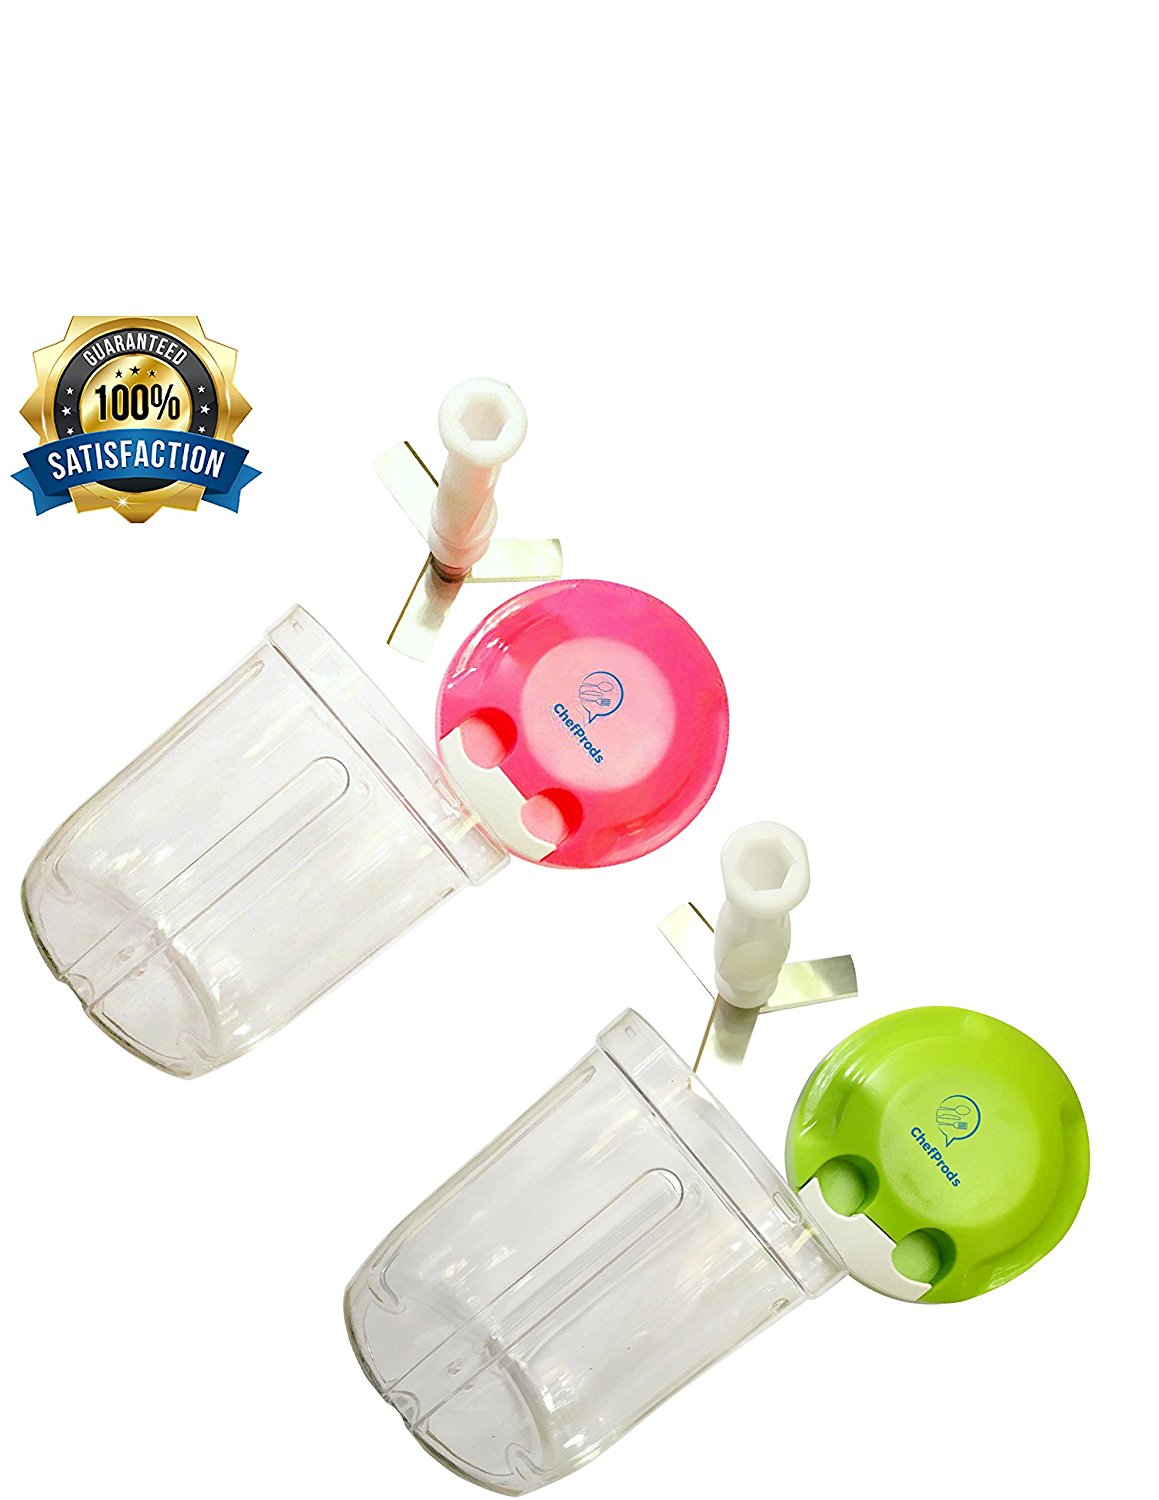 Easy Powerful Pull Food Chopper Manual Food Processor Hand Powered Vegetables Fruits Nuts... by